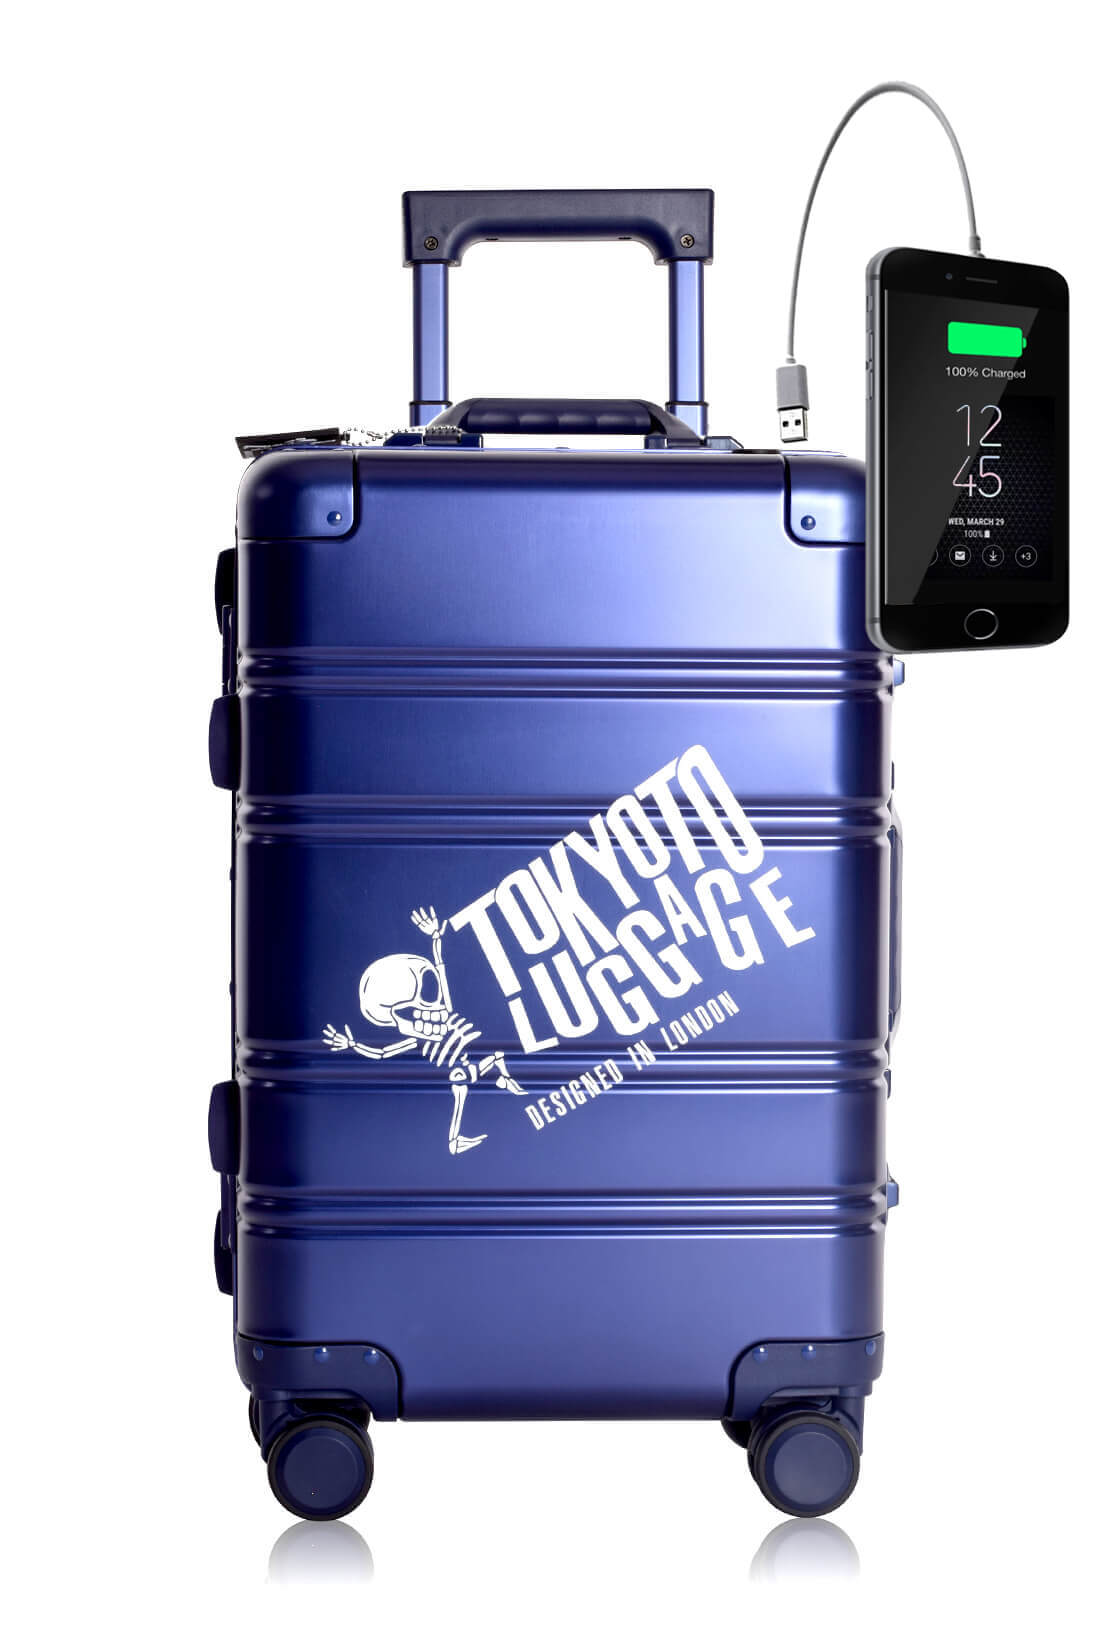 Full Aluminum Suitcase Cabin Size Carry-on Luggage Trolley BLUE LOGO